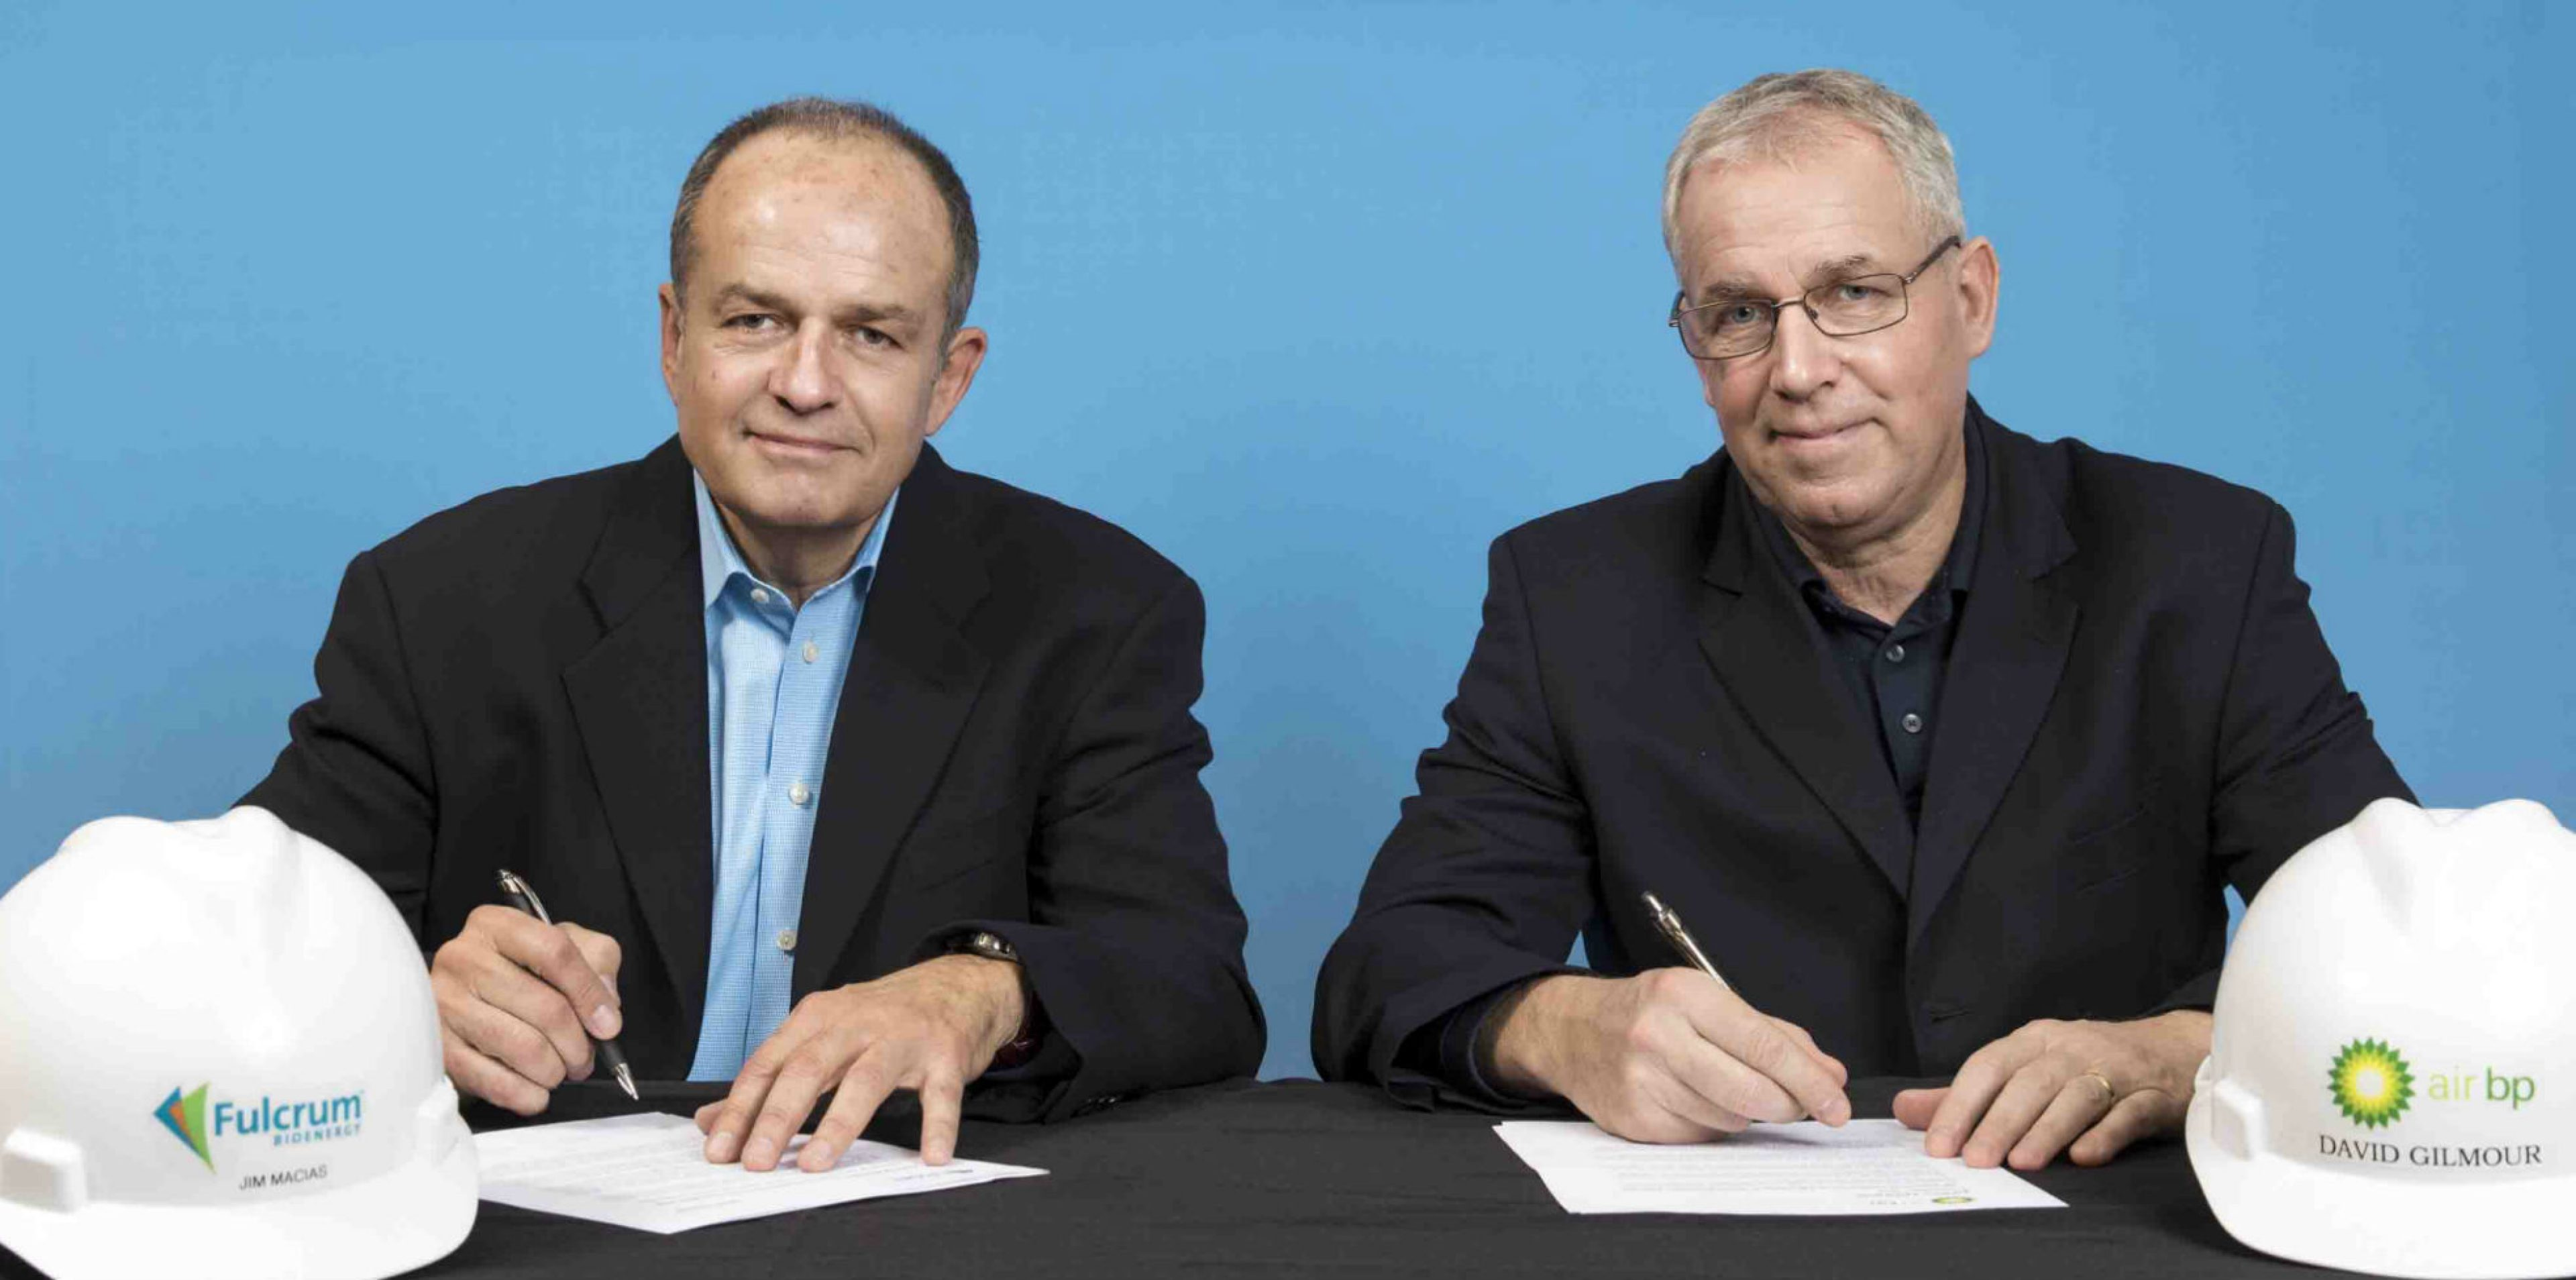 L-R, E.James Macias, President and CEO of Fulcrum, signs agreement with David Gilmour, Vice President Technology, Commercialisation and Ventures, BP Ventures